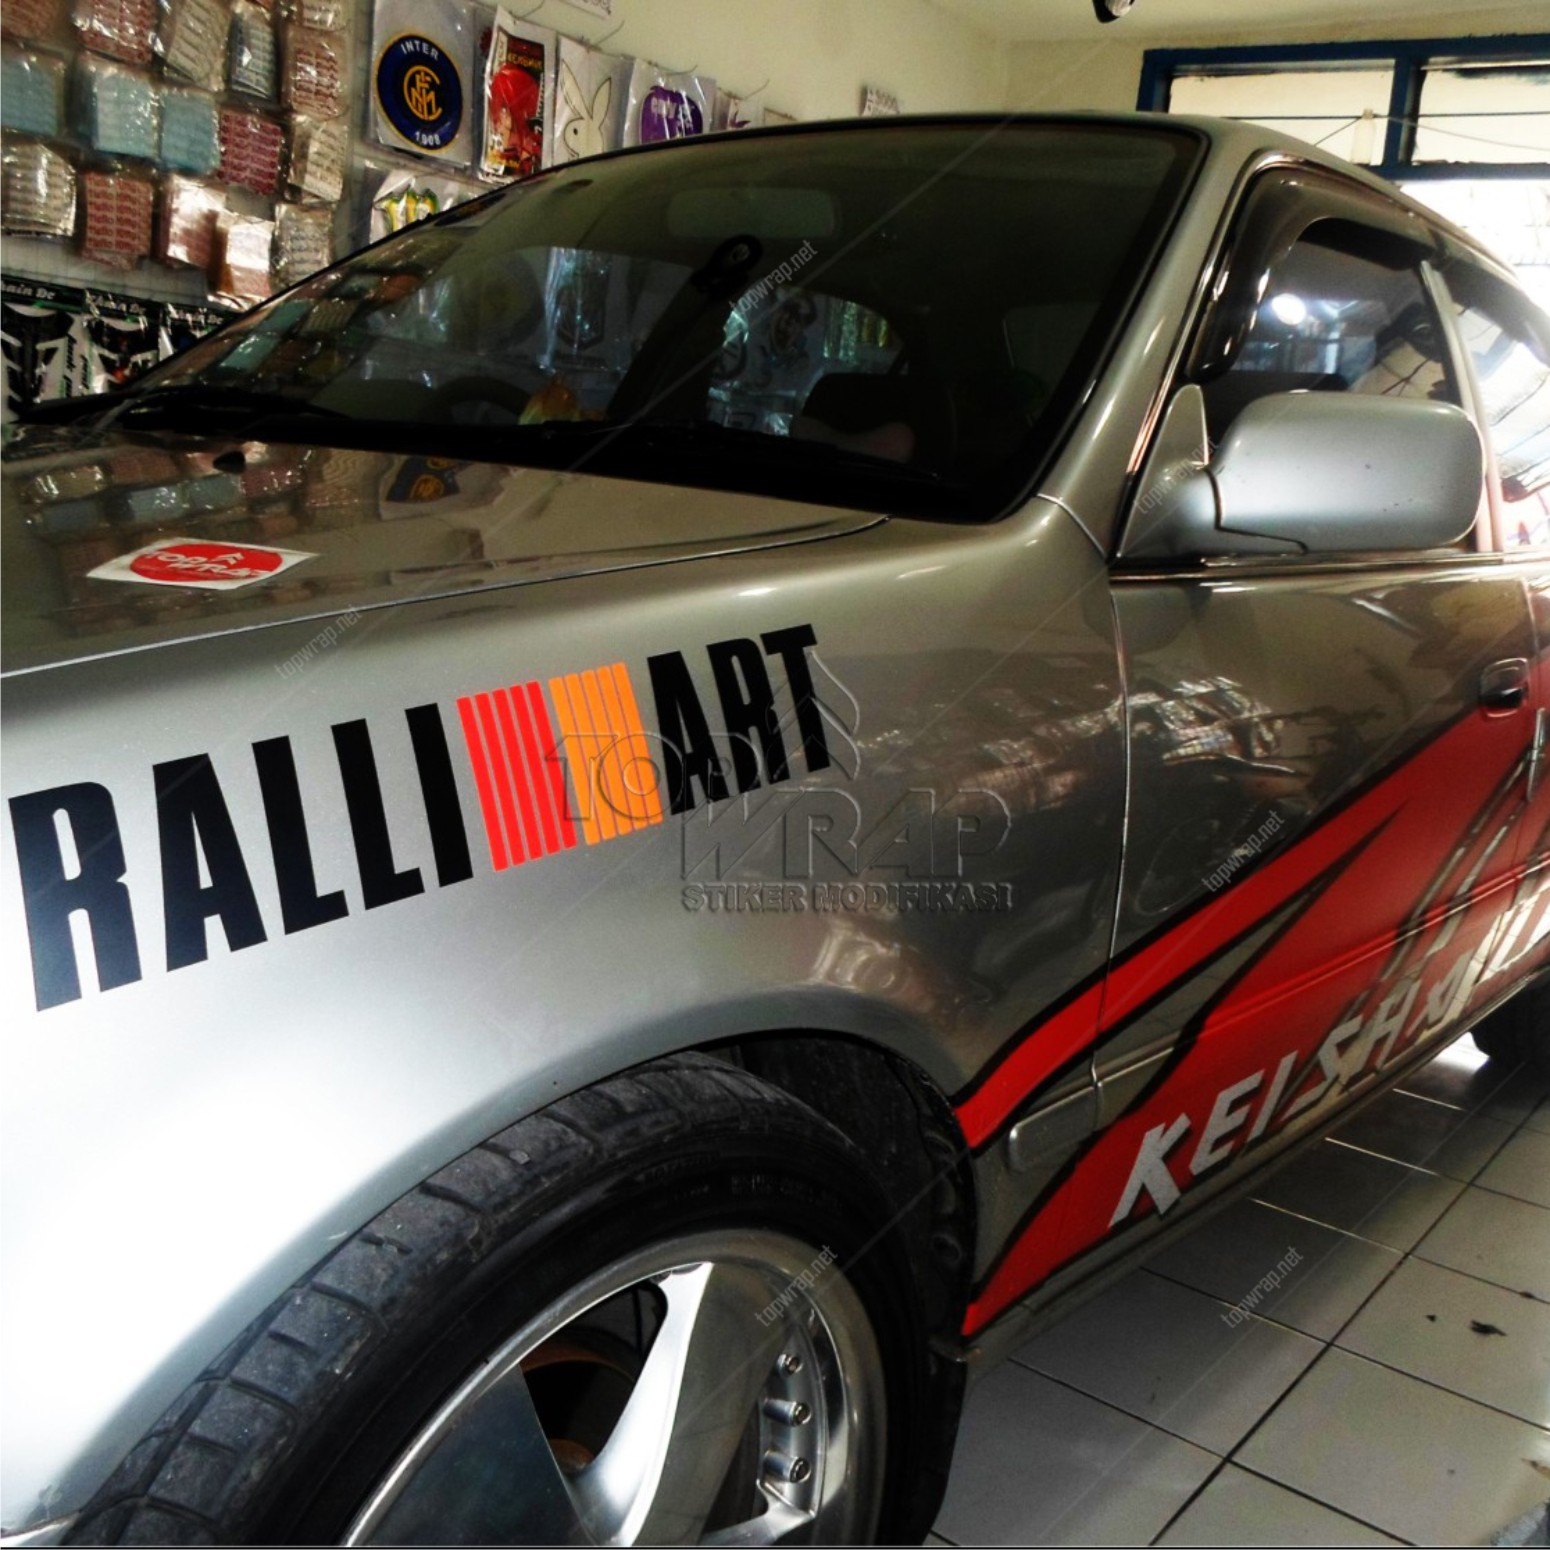 Jual Striping Sporty Ralli art / Stiker Mobil / Cutting ...